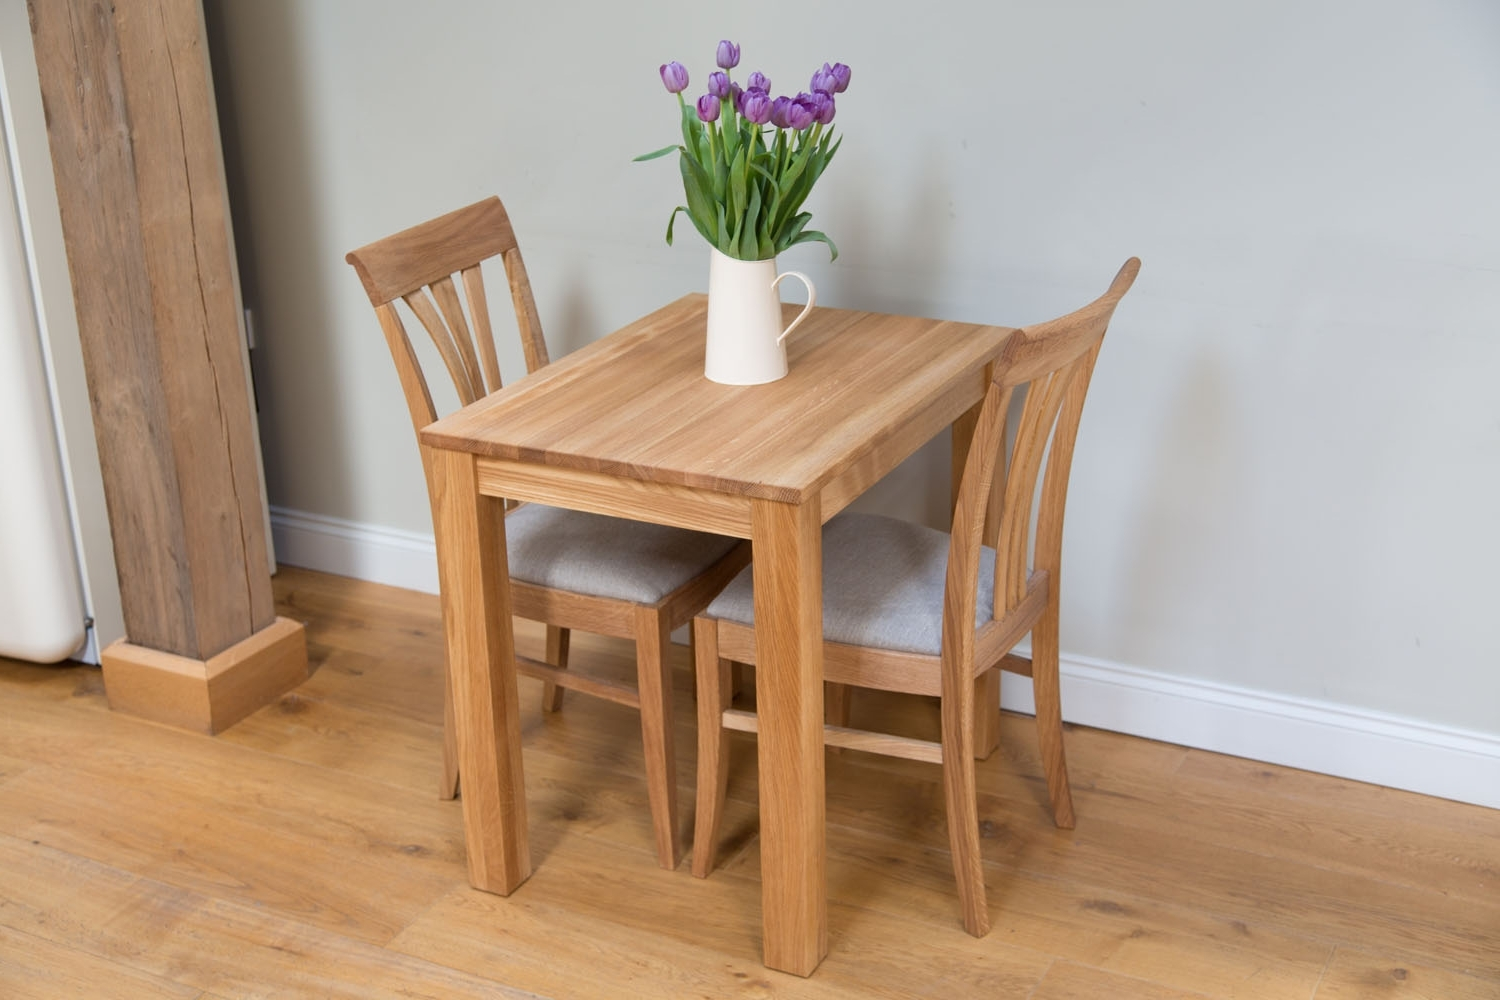 Cheap 2 Seater Kitchen Table (View 5 of 25)